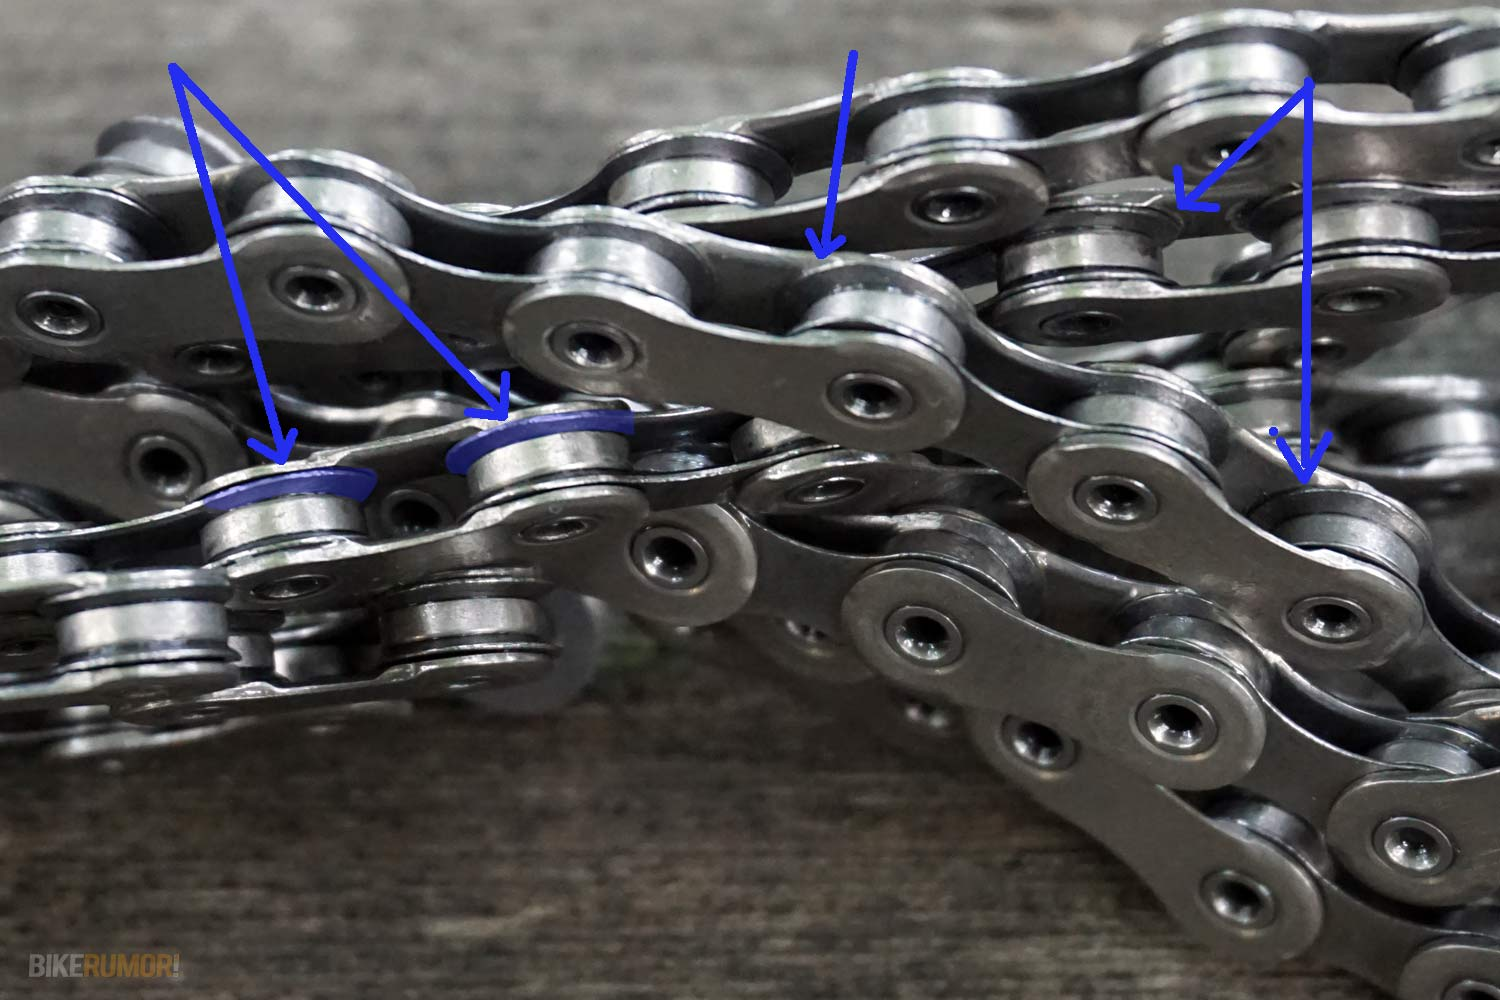 Shimano XTR M9000 chain with dynamic chain engagement